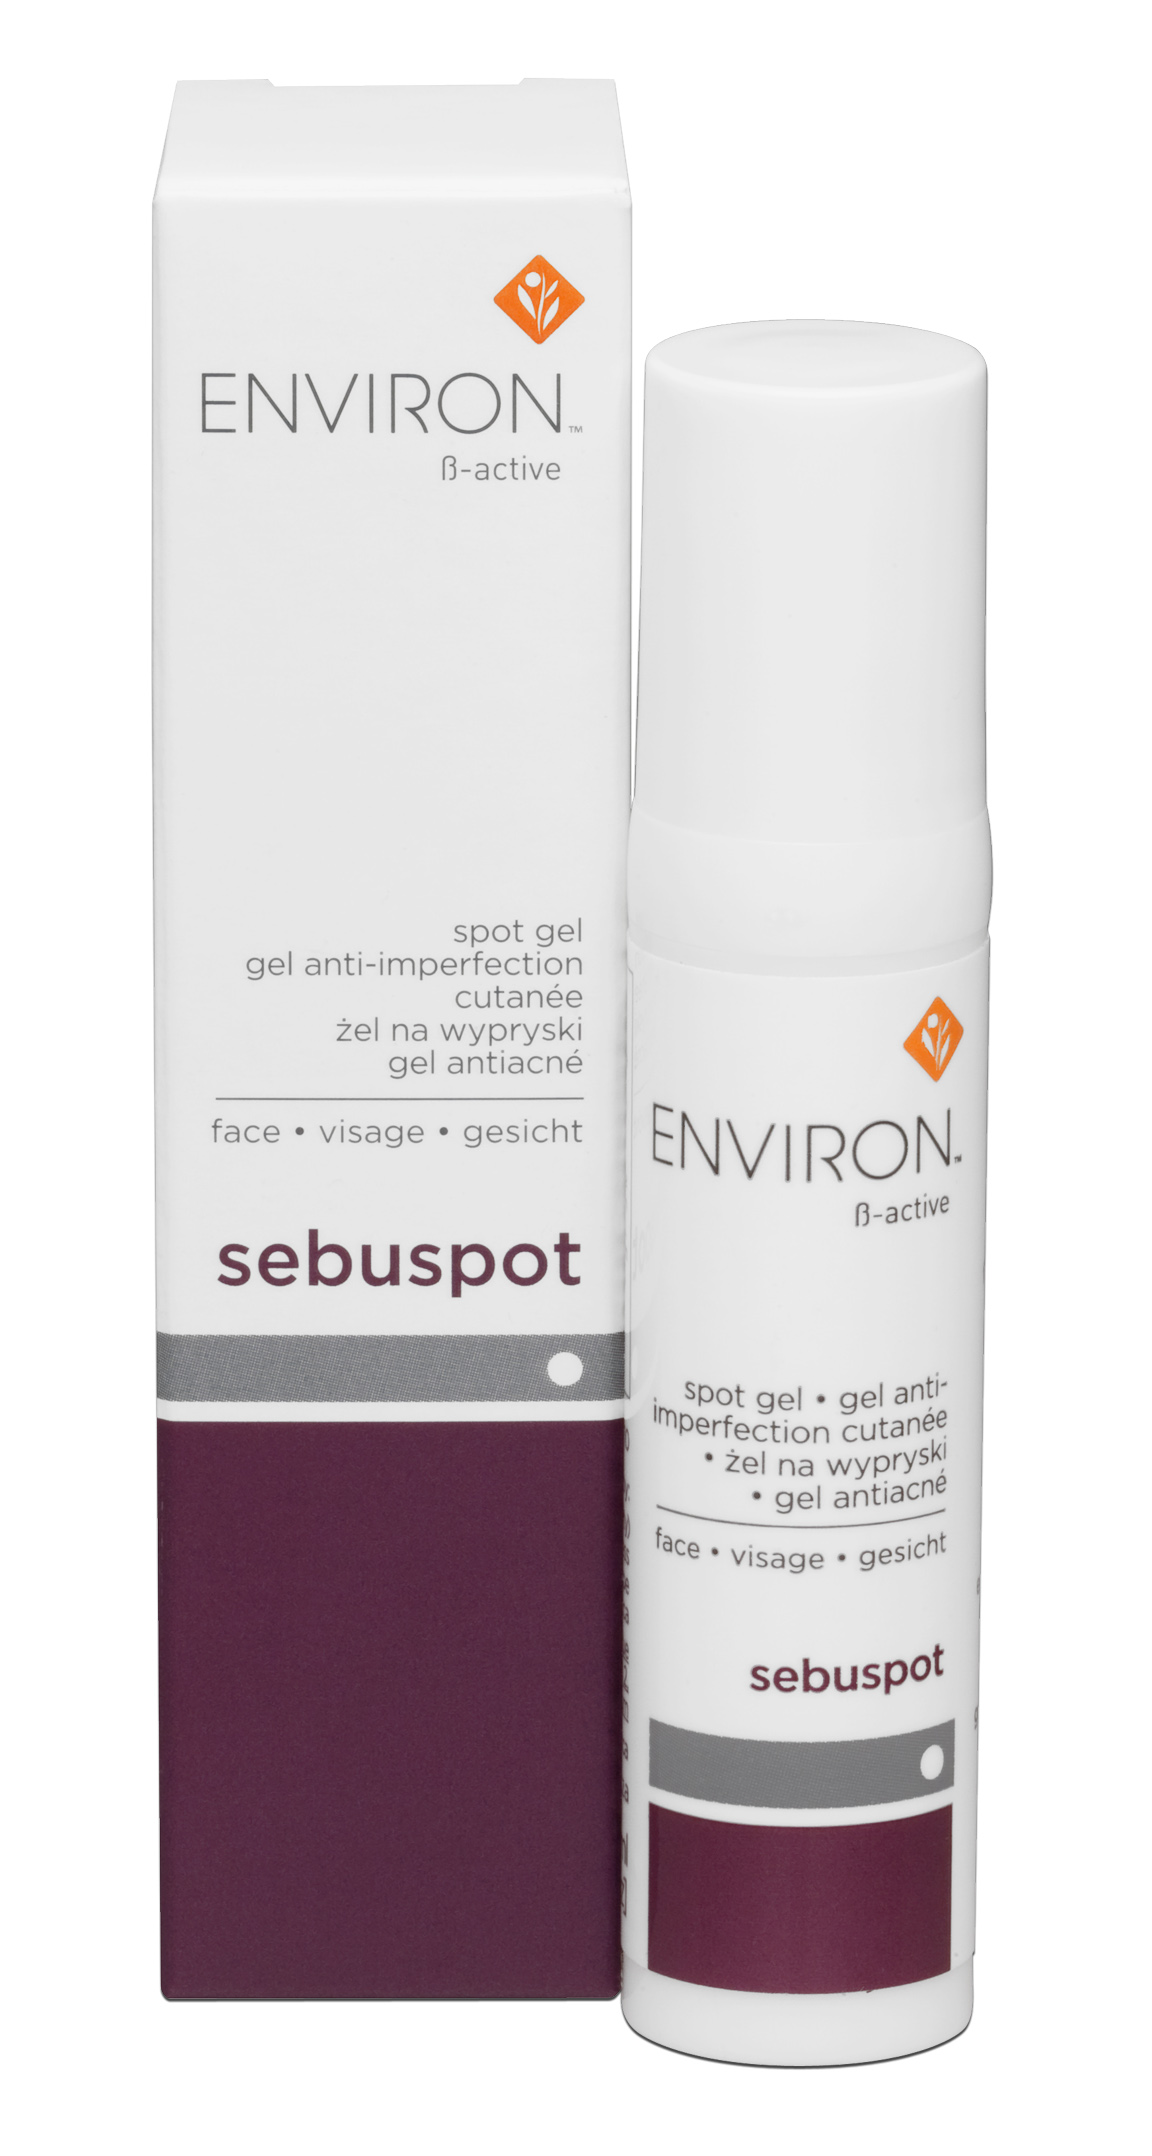 Environ sebuspot gel active system environ for Active salon supplies